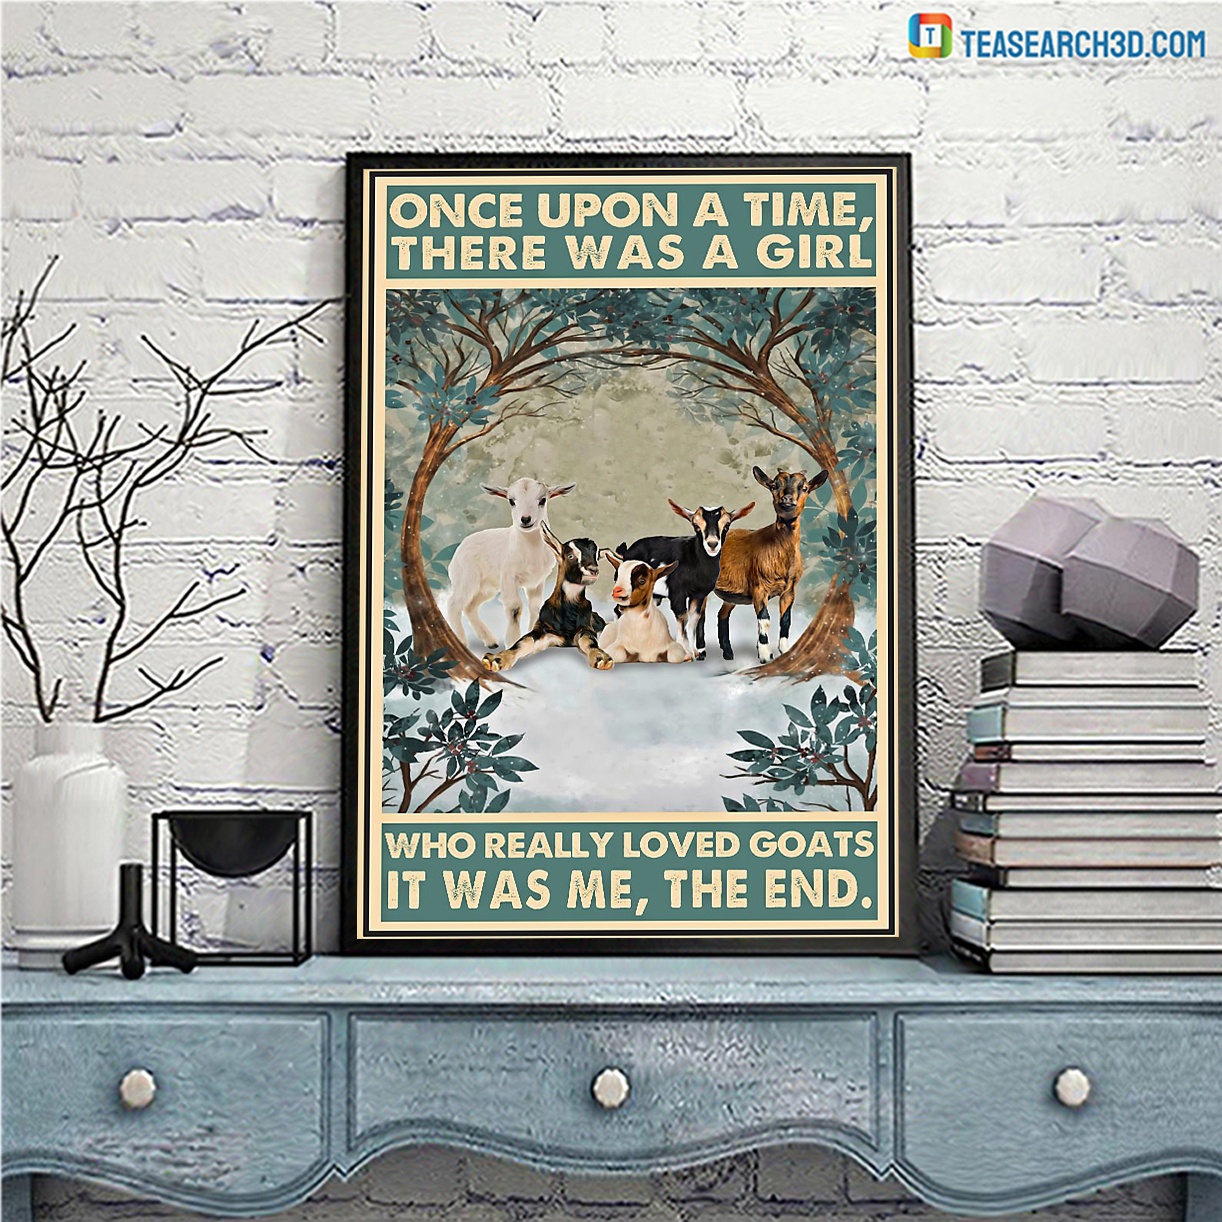 There was a girl who really loved goats it was me the end poster A3